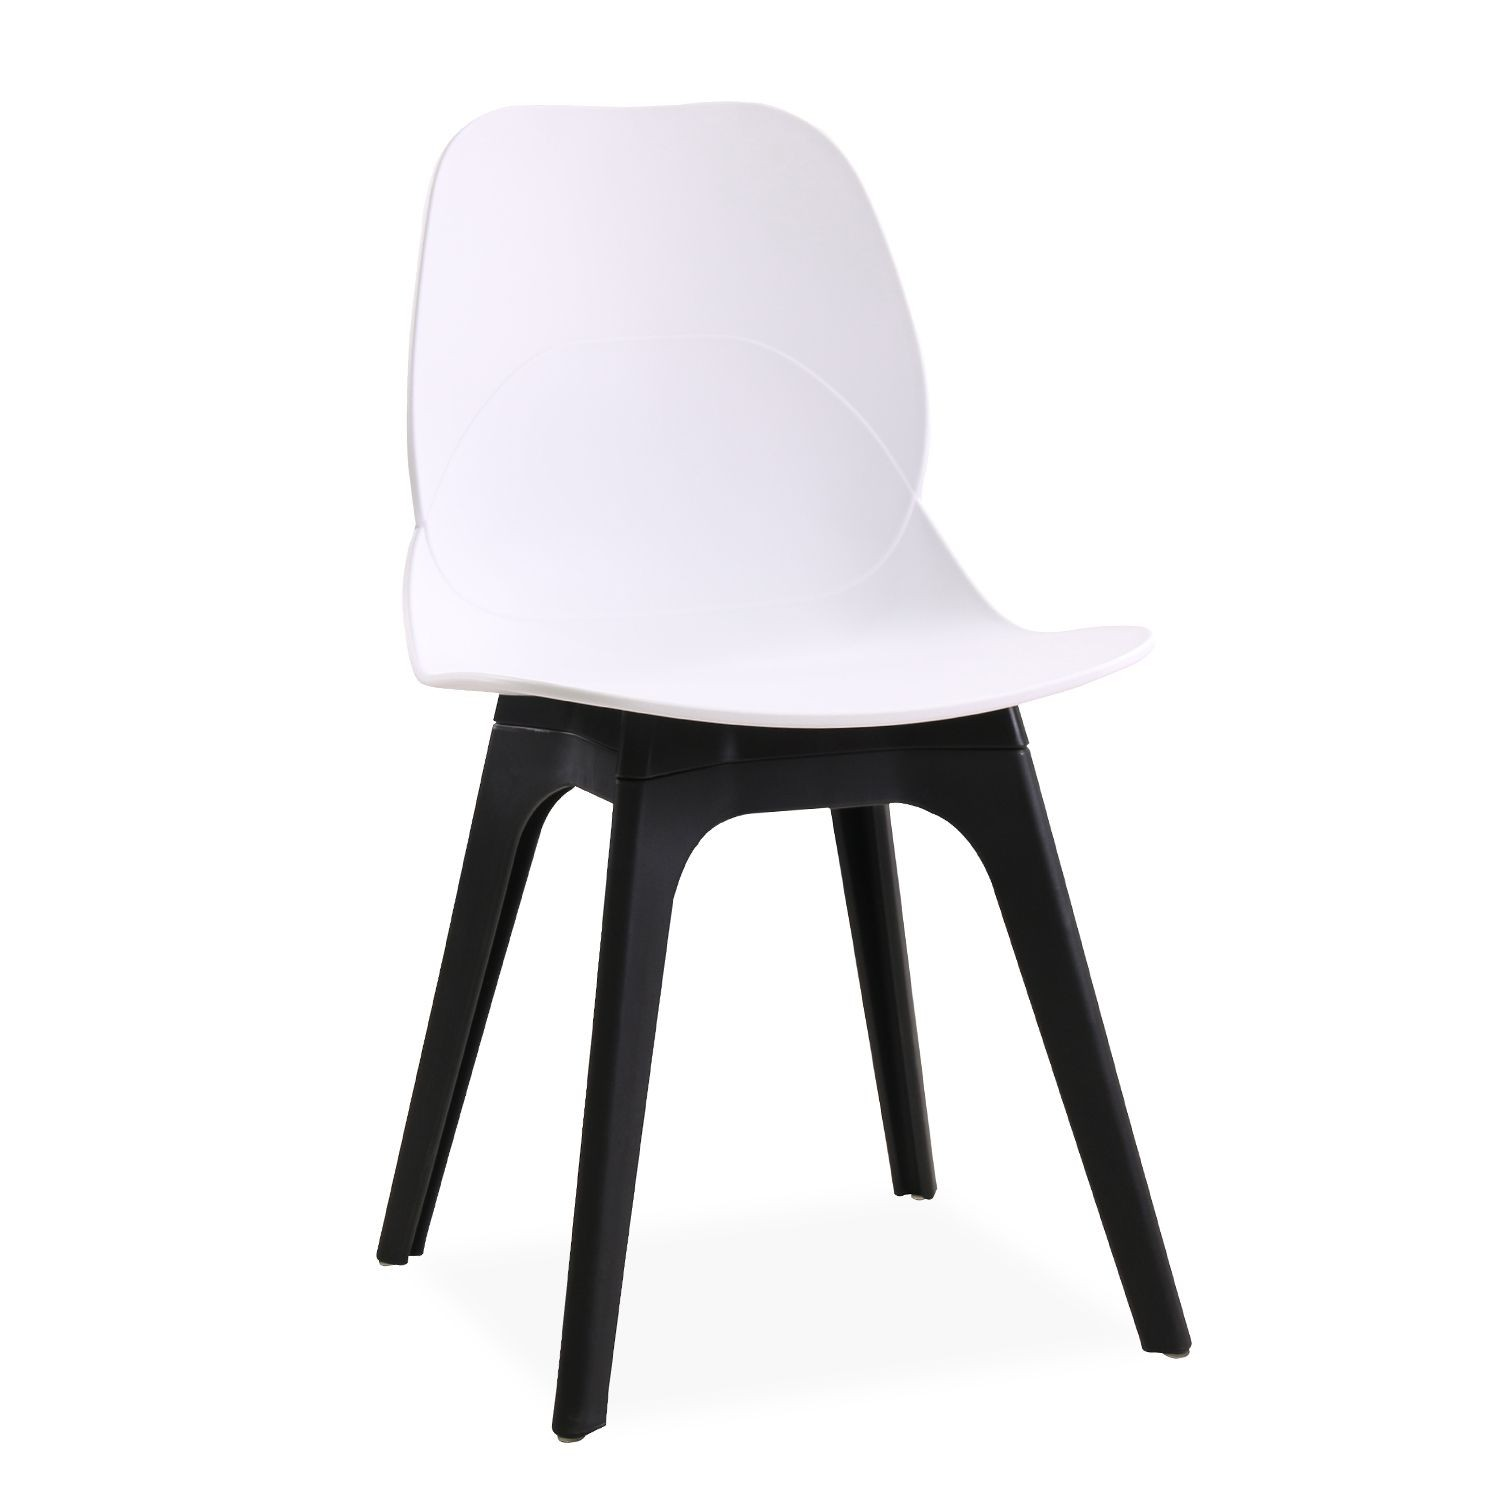 Chair ARIES, Polypropylene Black And White